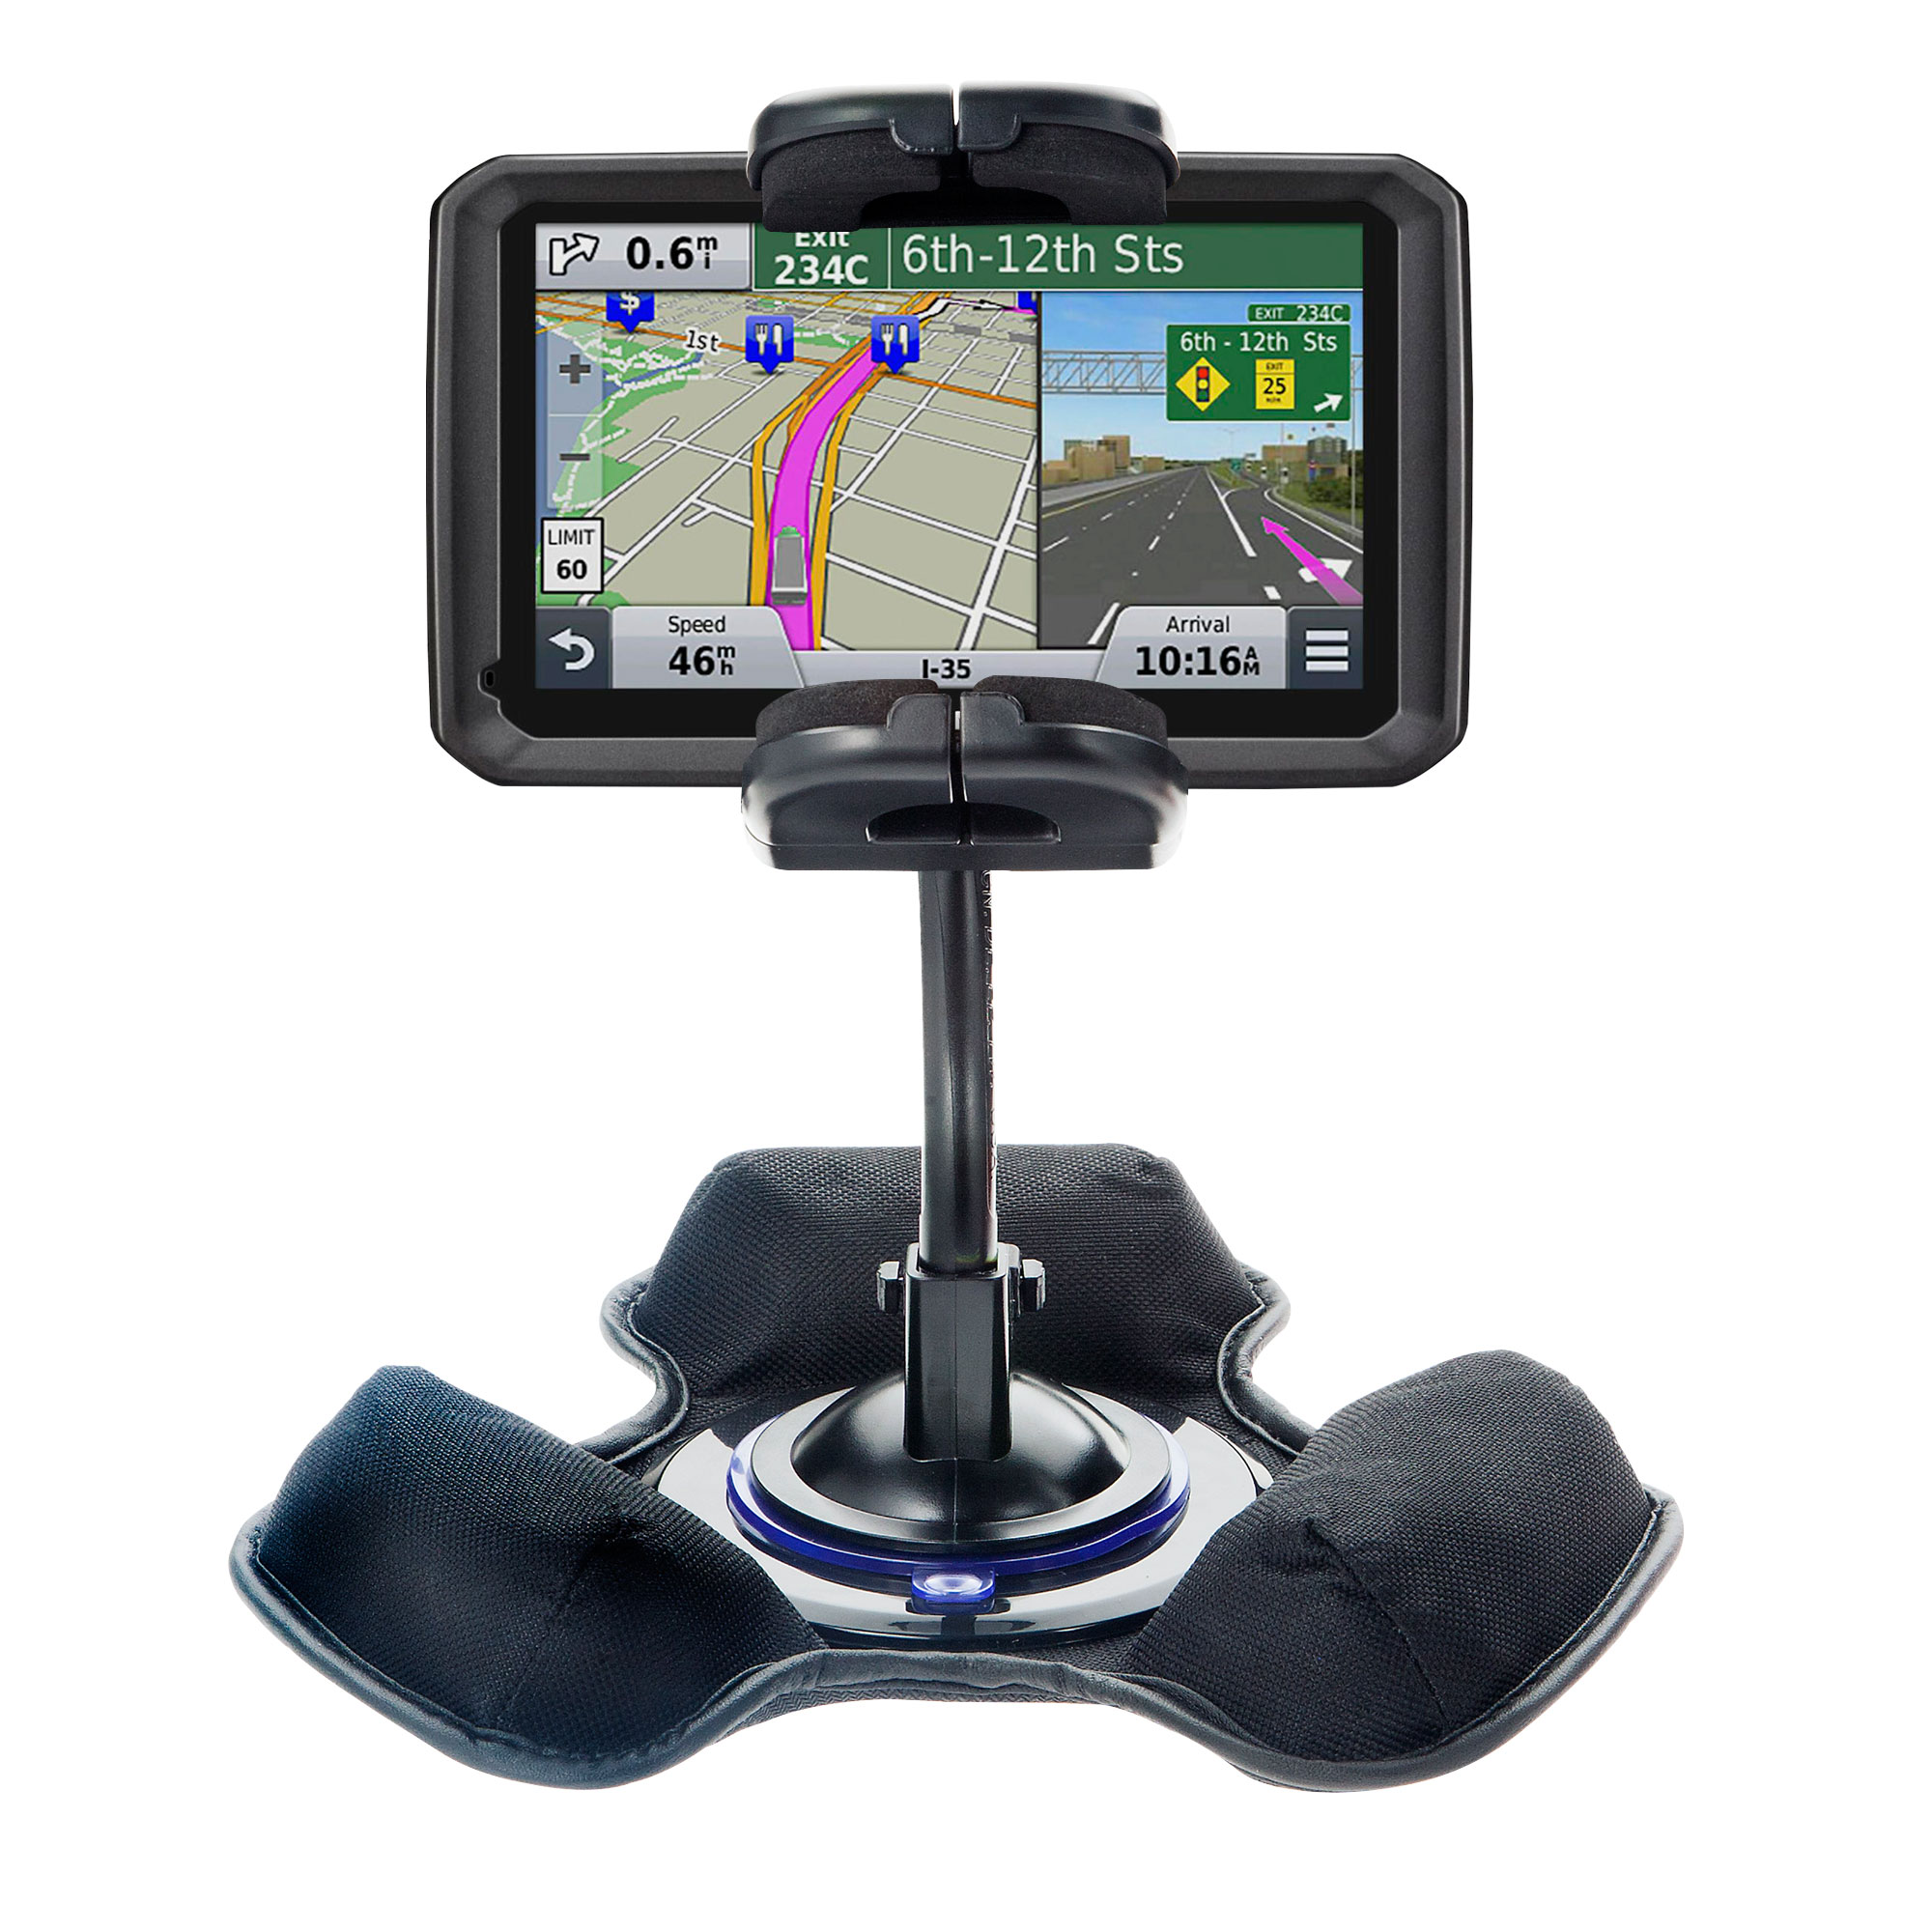 Dash and Windshield Holder compatible with the Garmin dezl 570 LMT